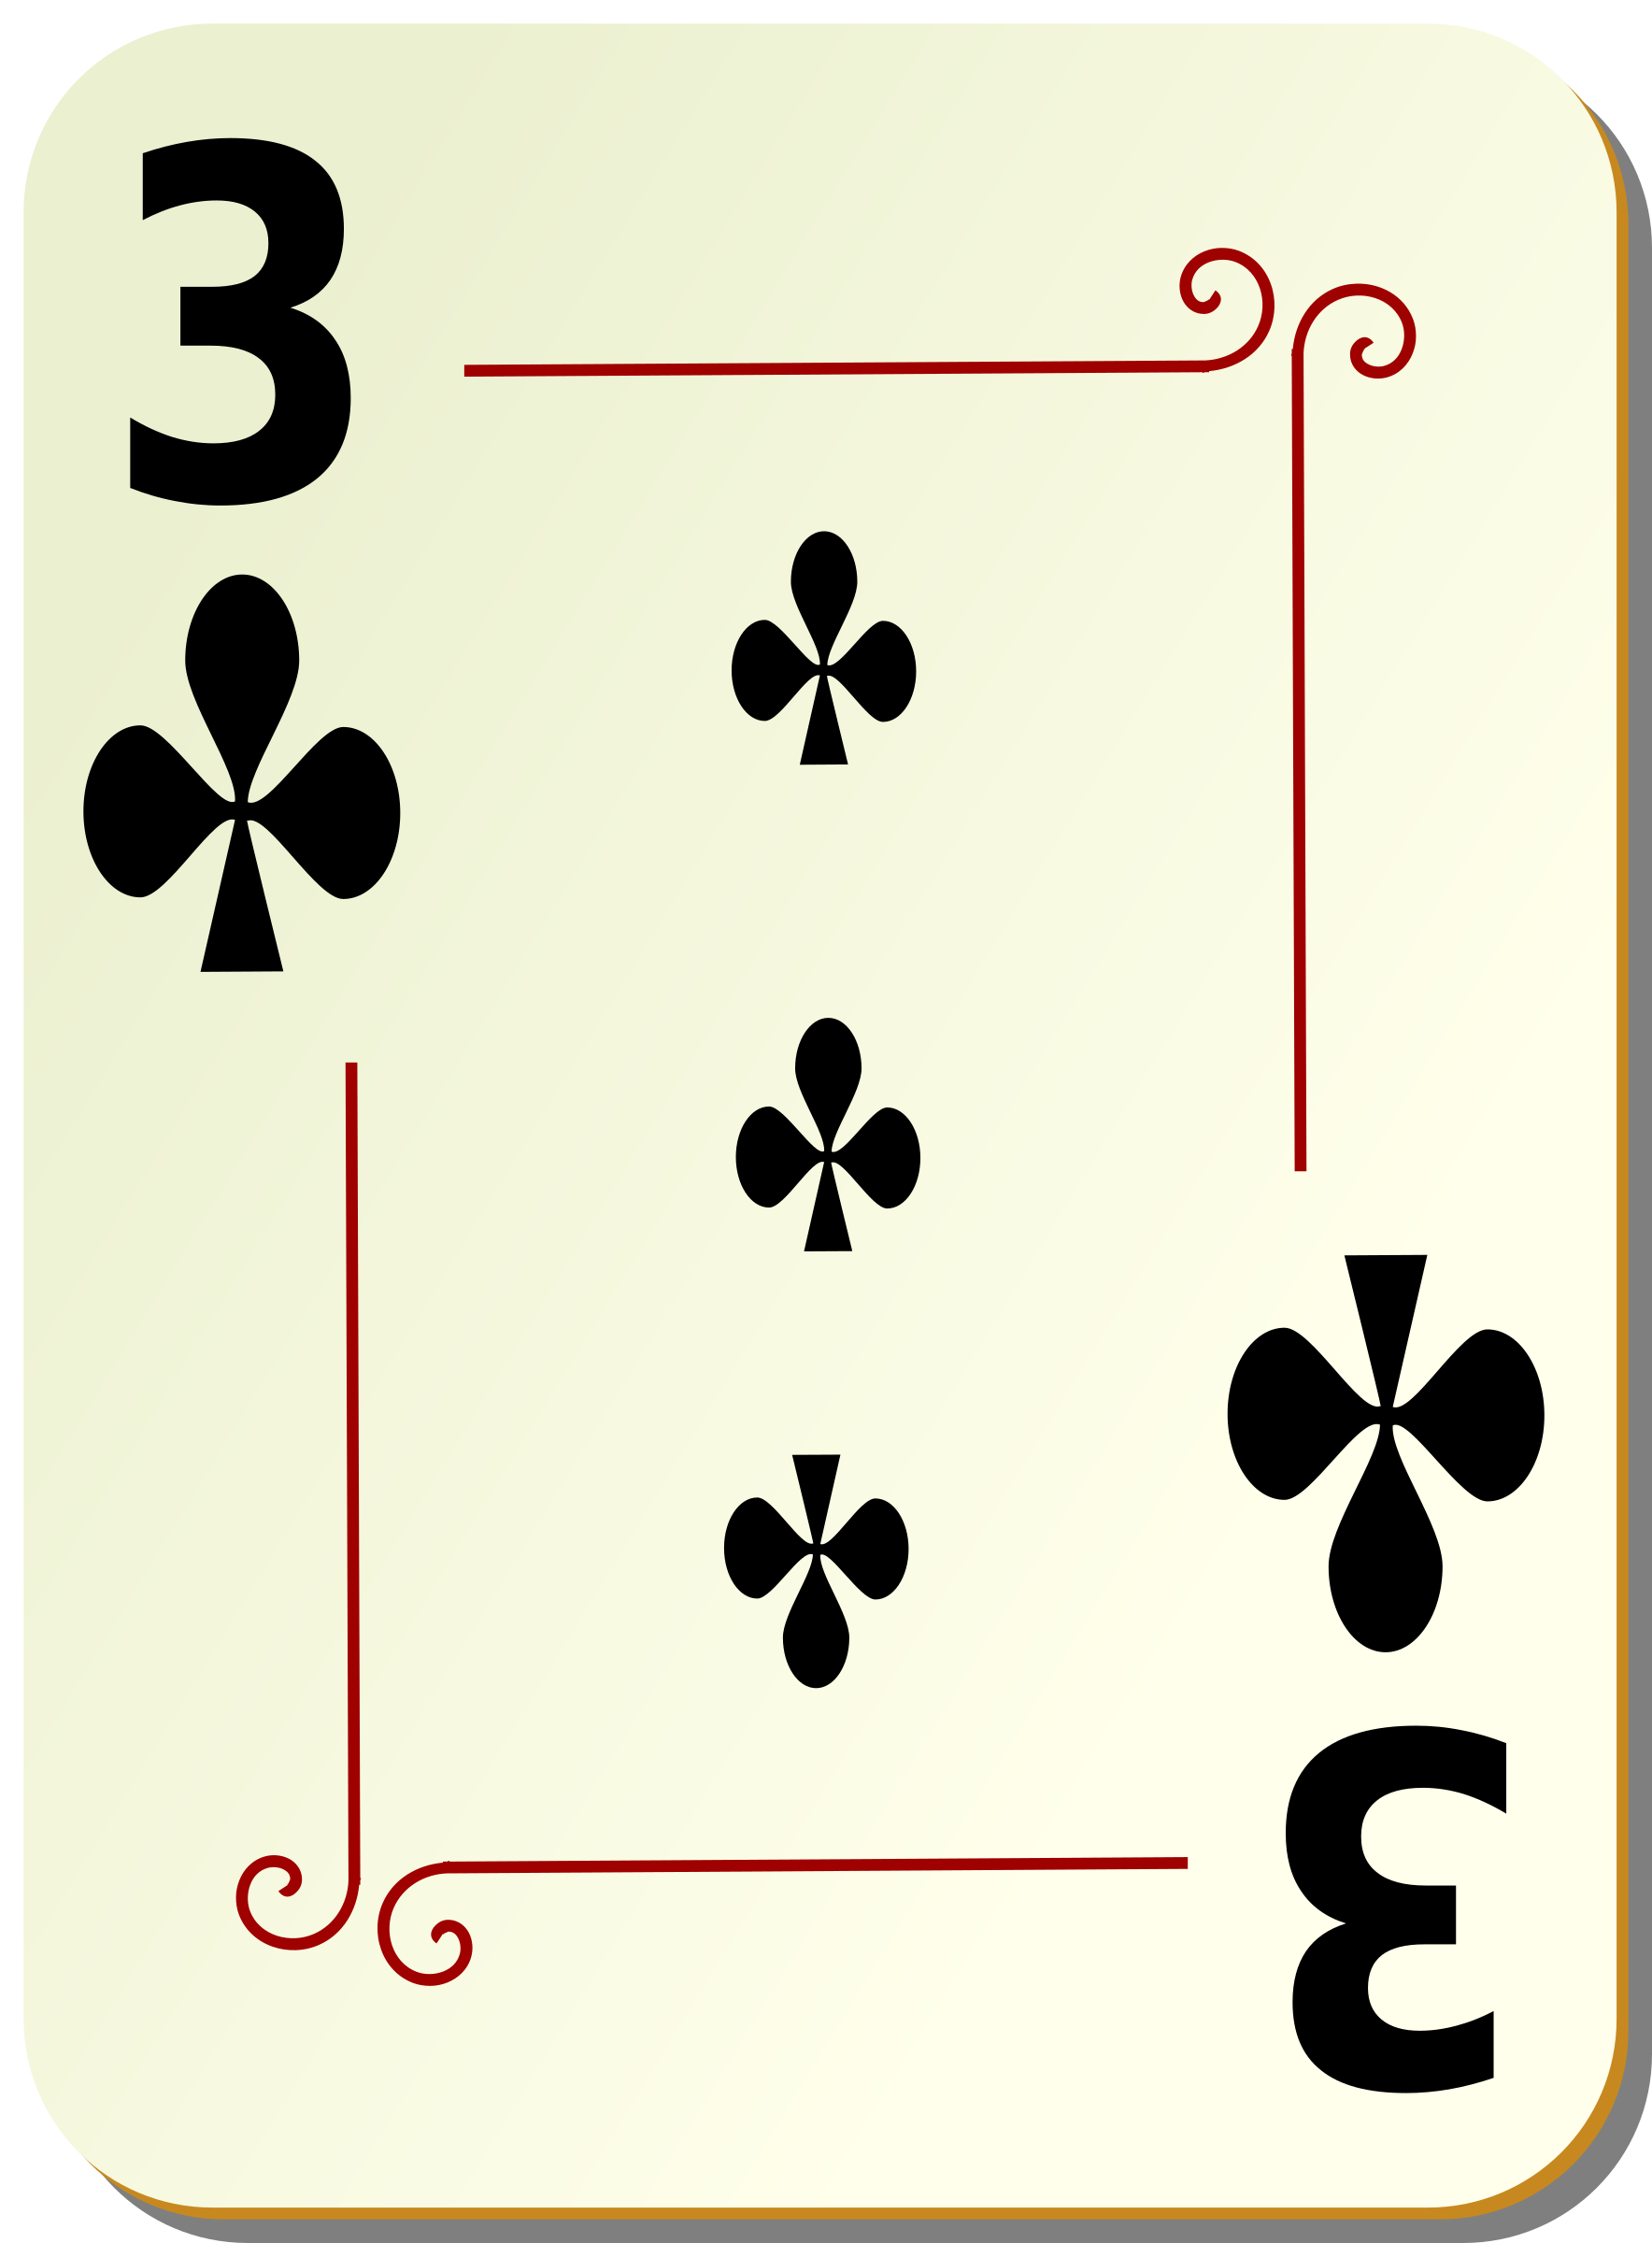 Ornamental deck: 3 of clubs by nicubunu